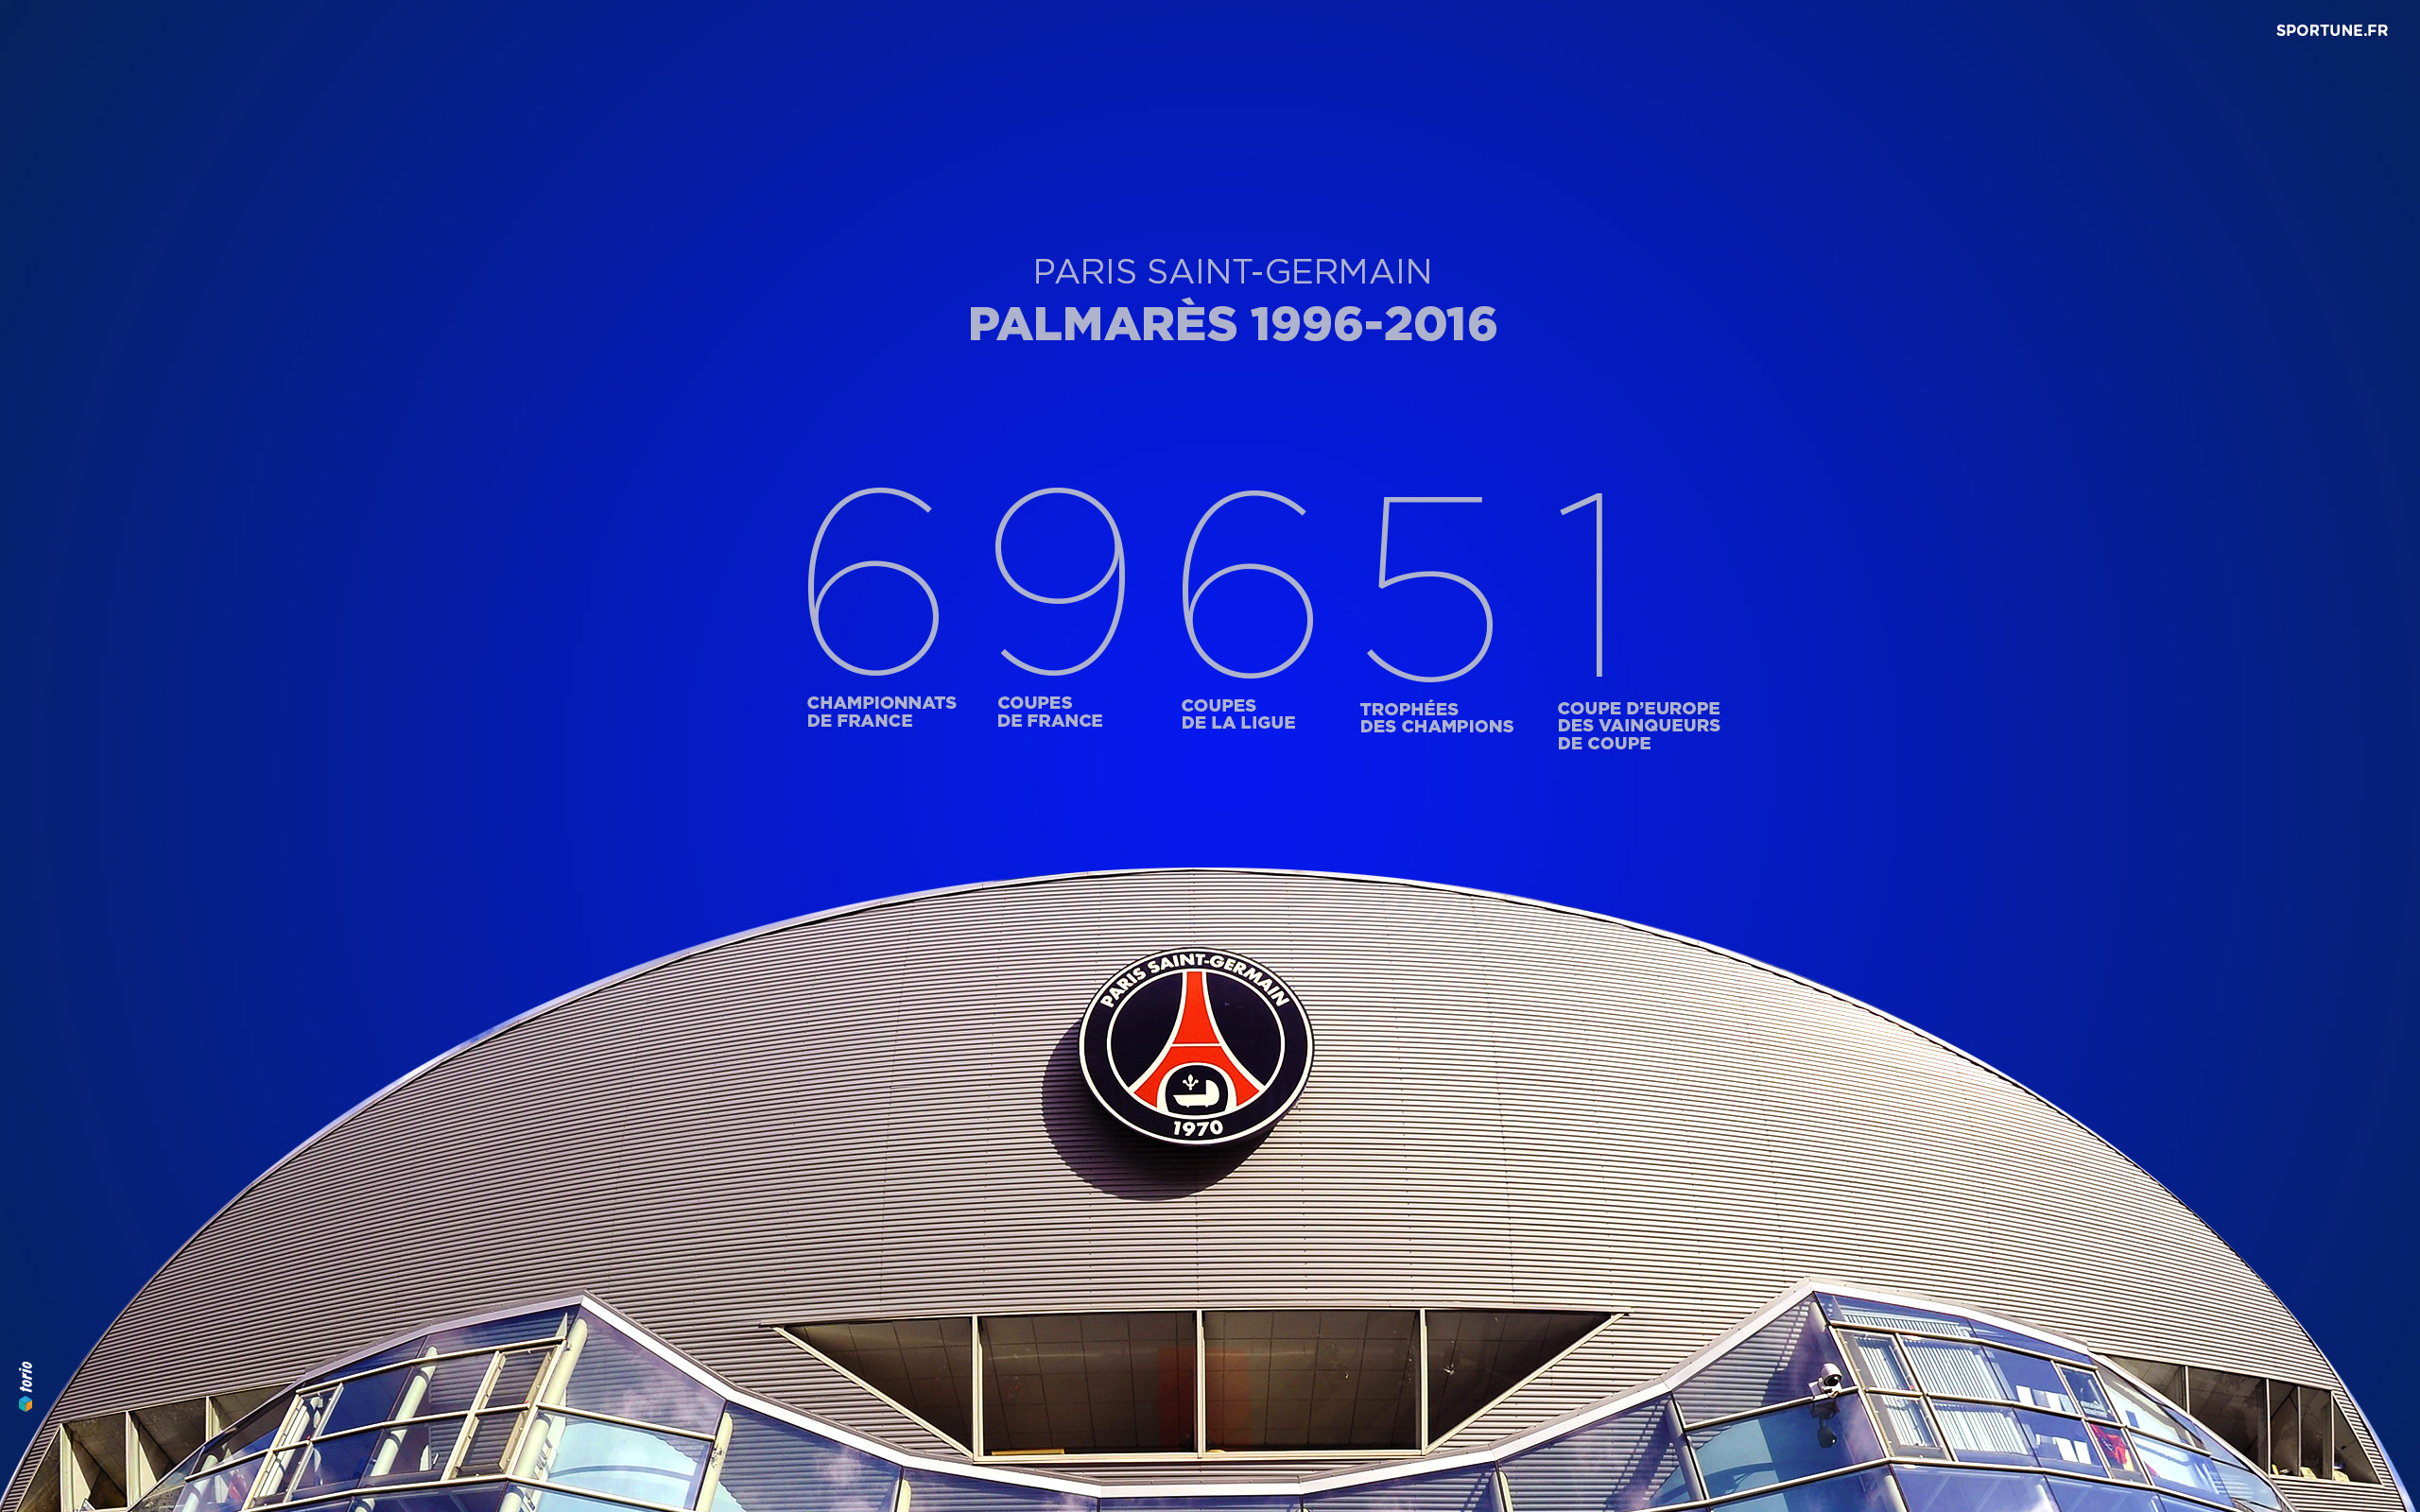 1920x1080 Photos Psg Wallpaper Hd 2015